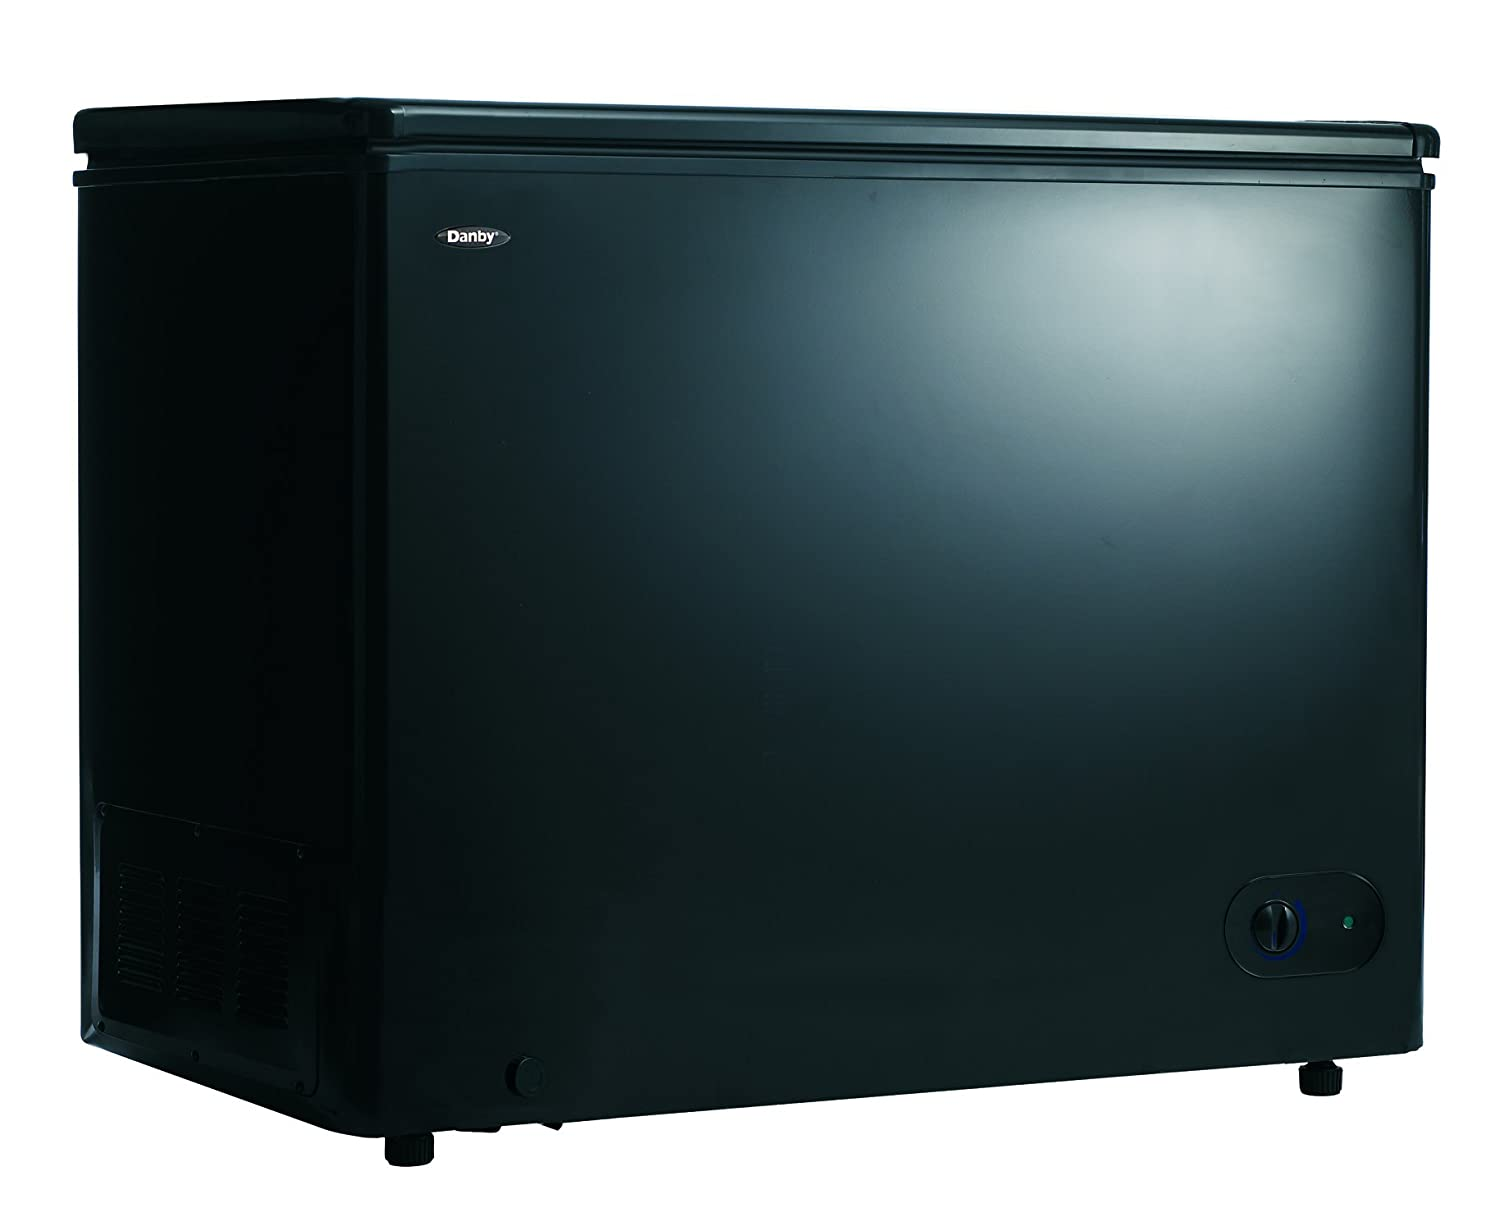 Danby DCF072A3BDB 7.2 cu. ft. Chest Freezer Black